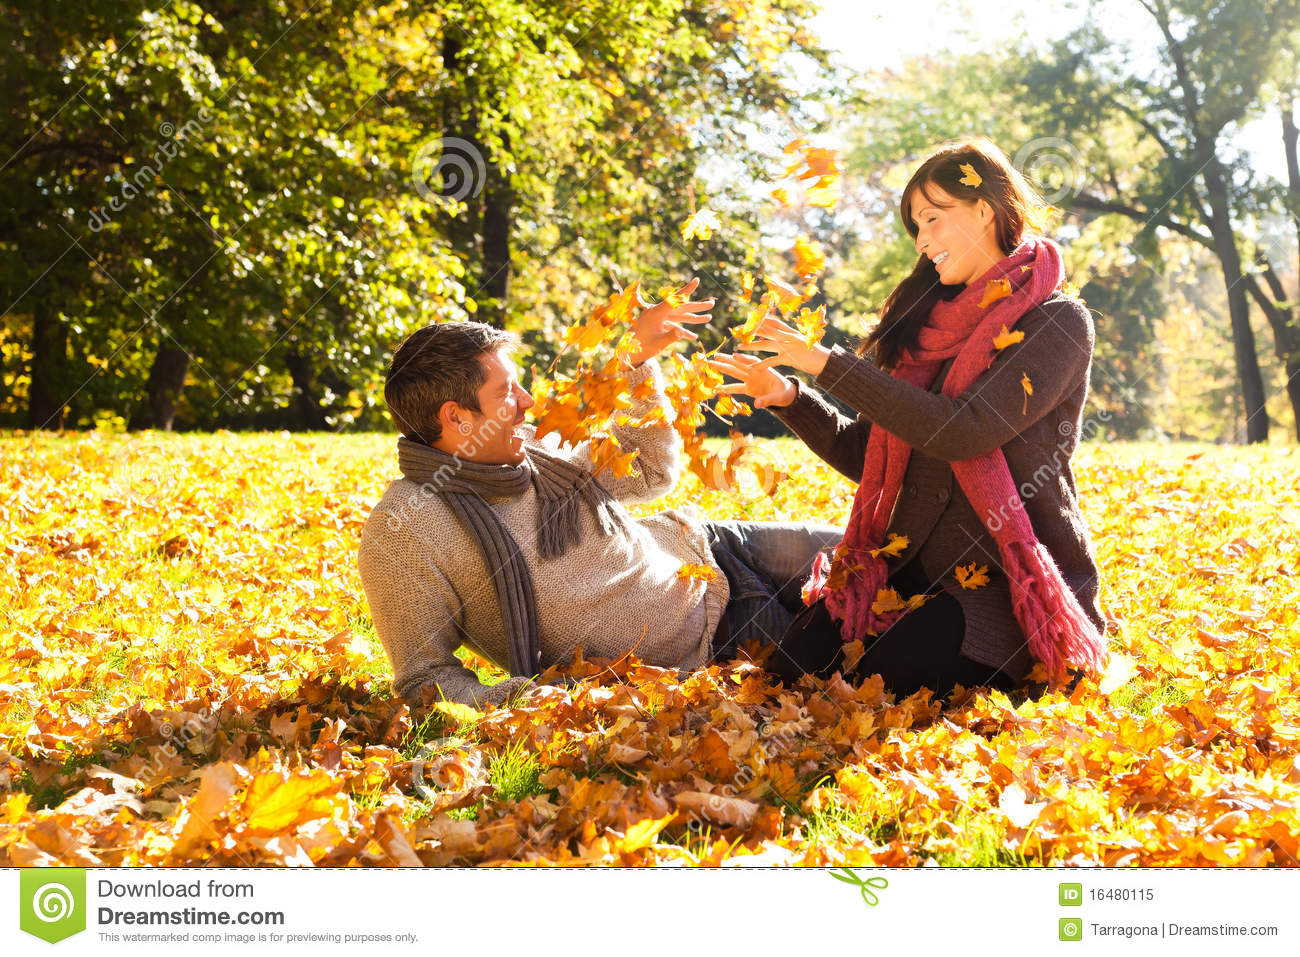 Boy And Girl Wallpaper Hd Download Autumn Fall Couple Stock Image Image Of Blowing Autumn